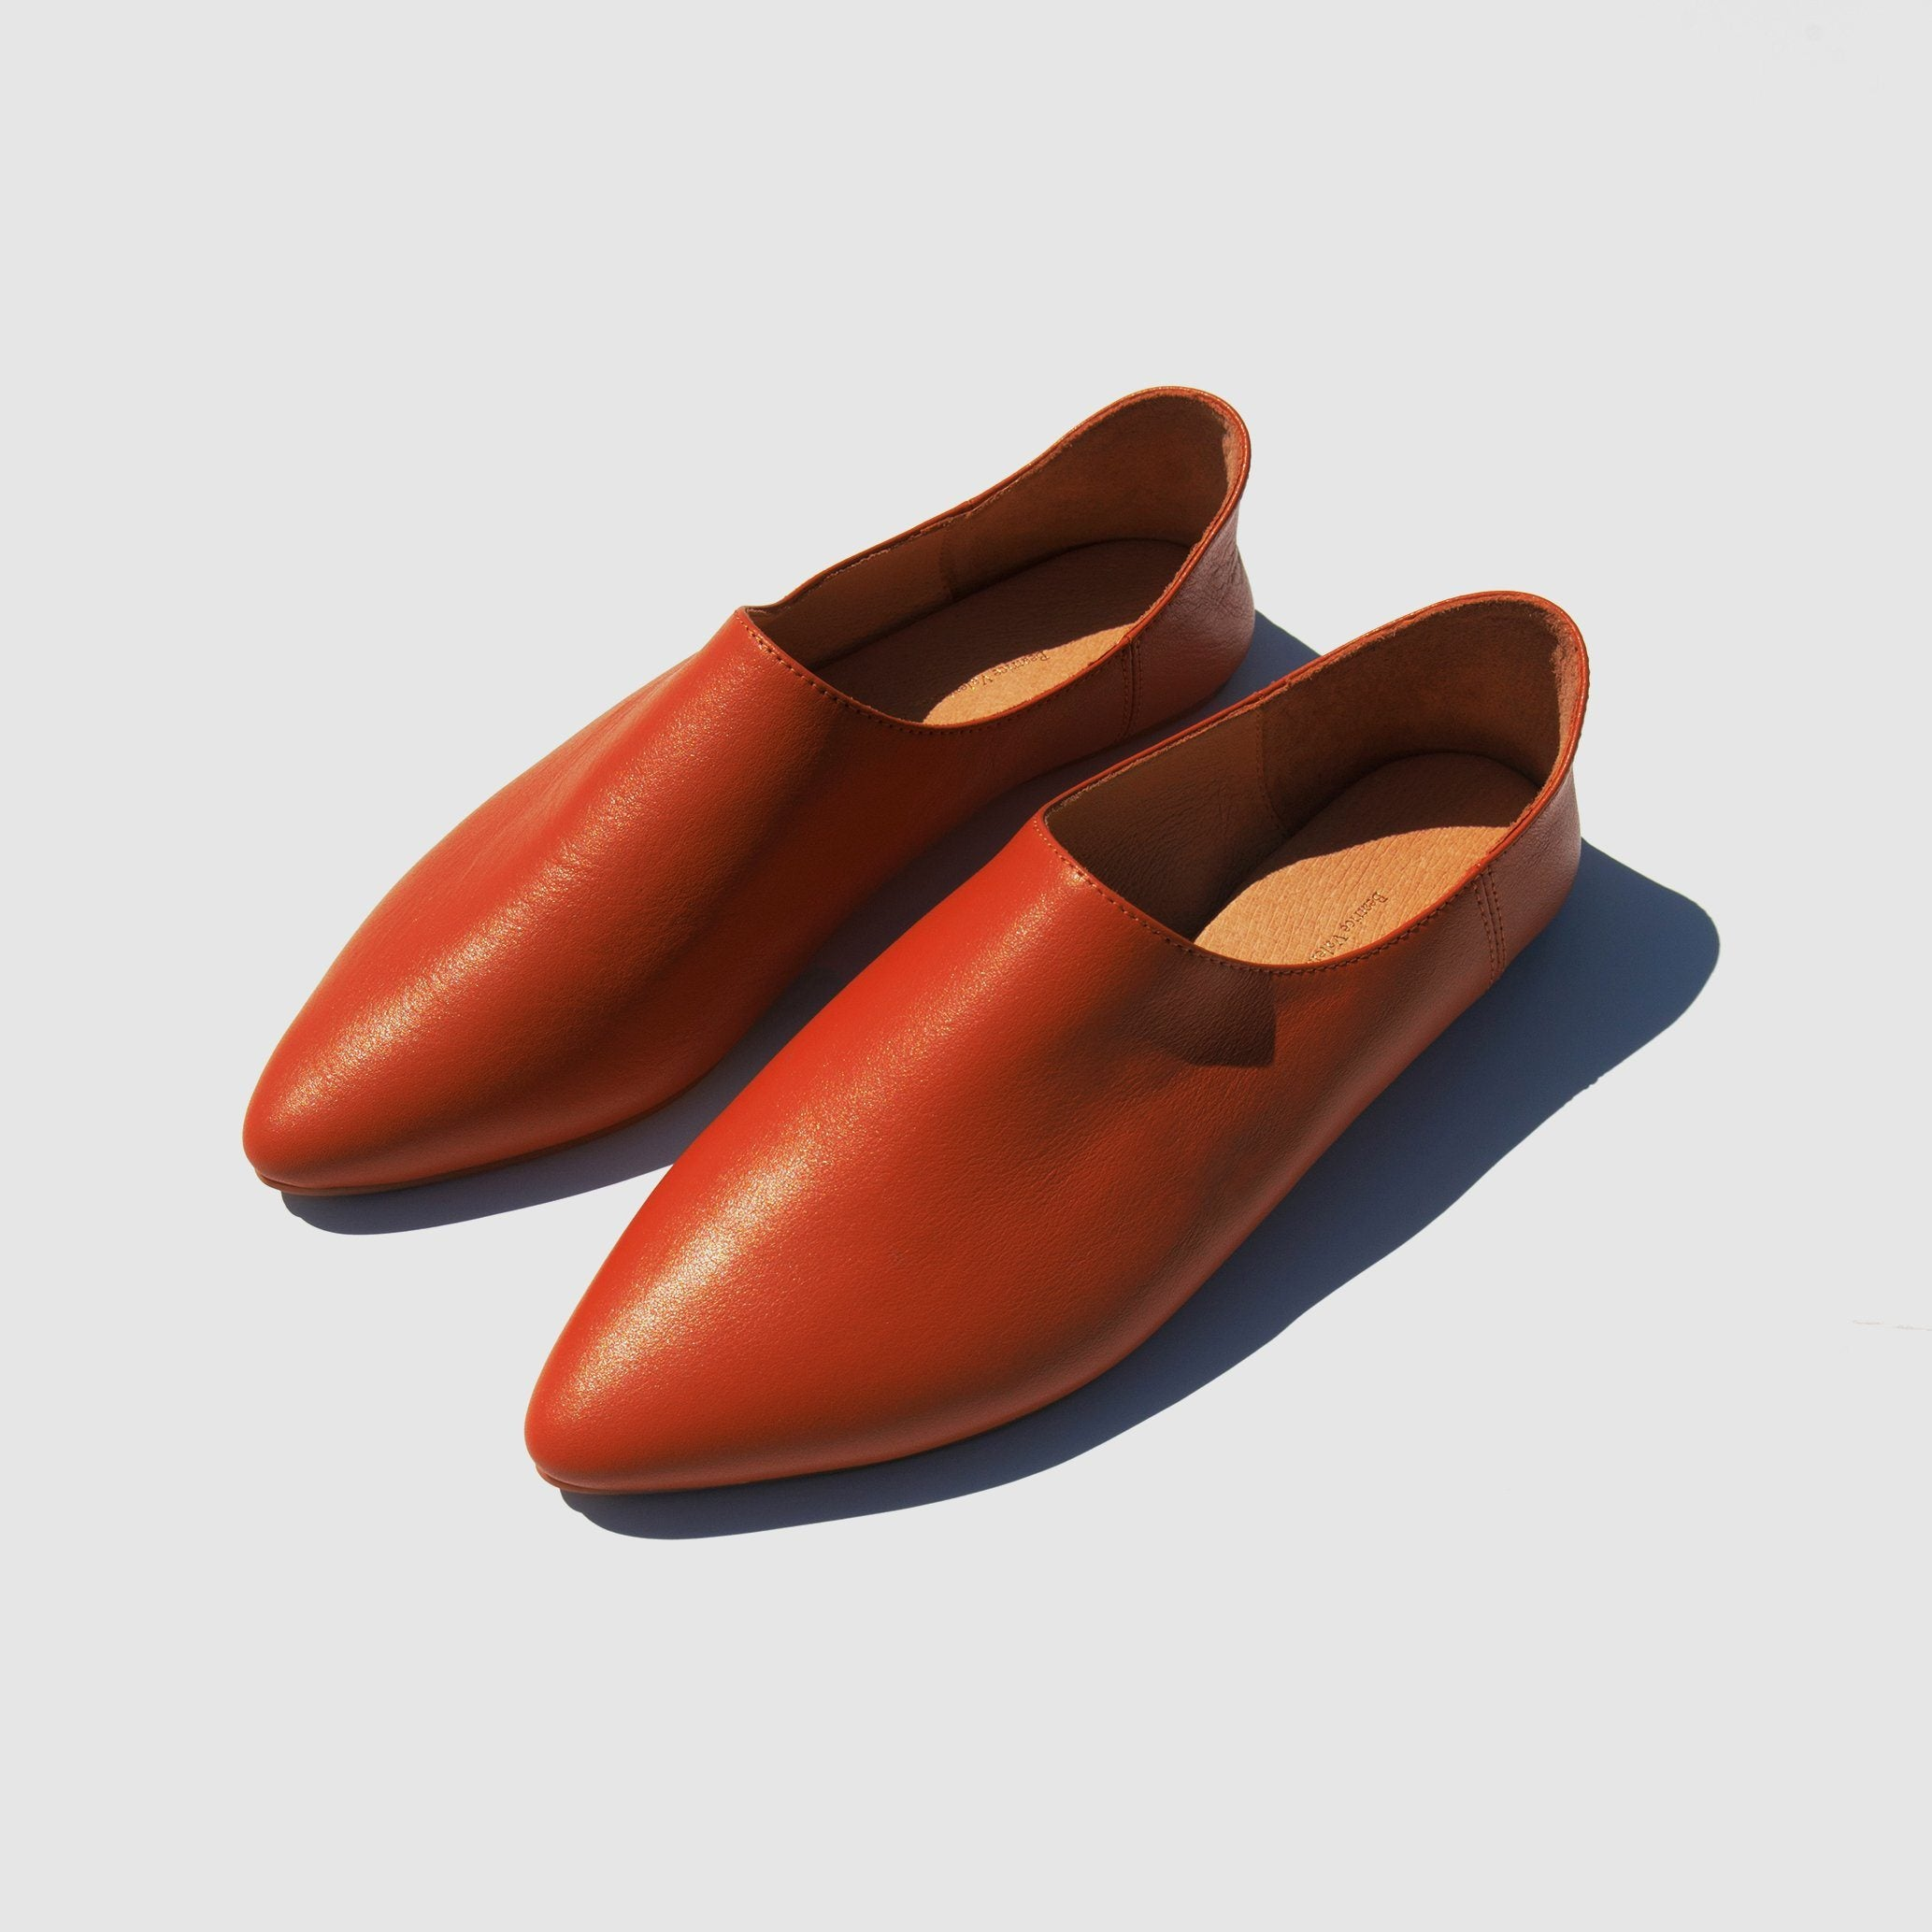 SHOES - MAASAI BABOUCHE